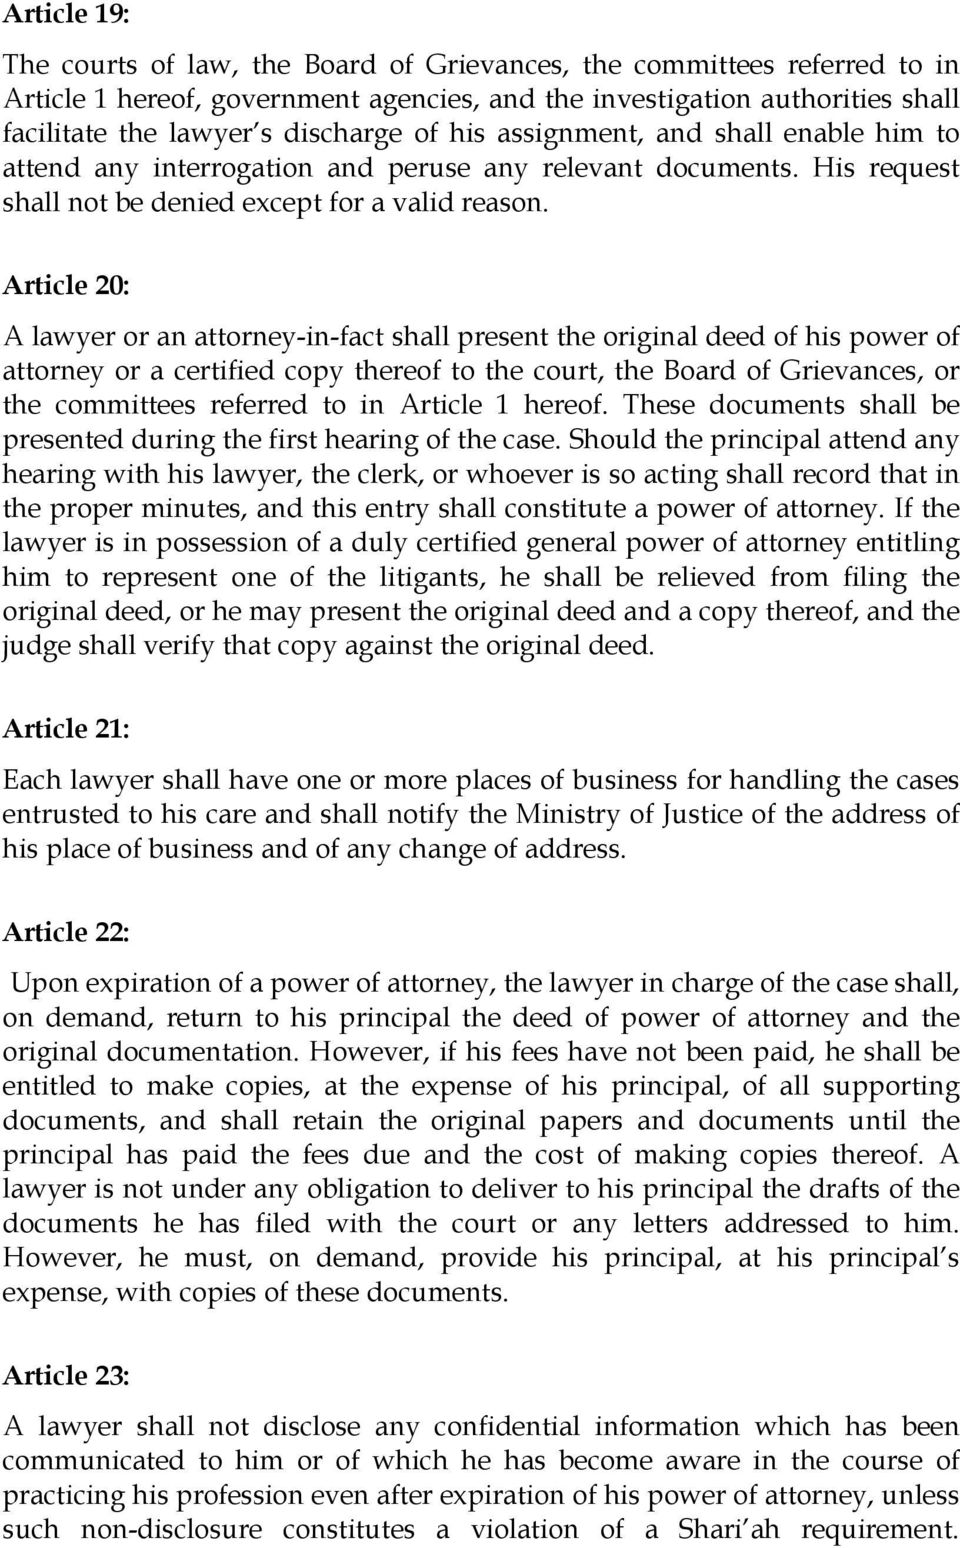 Article 20: A lawyer or an attorney-in-fact shall present the original deed of his power of attorney or a certified copy thereof to the court, the Board of Grievances, or the committees referred to